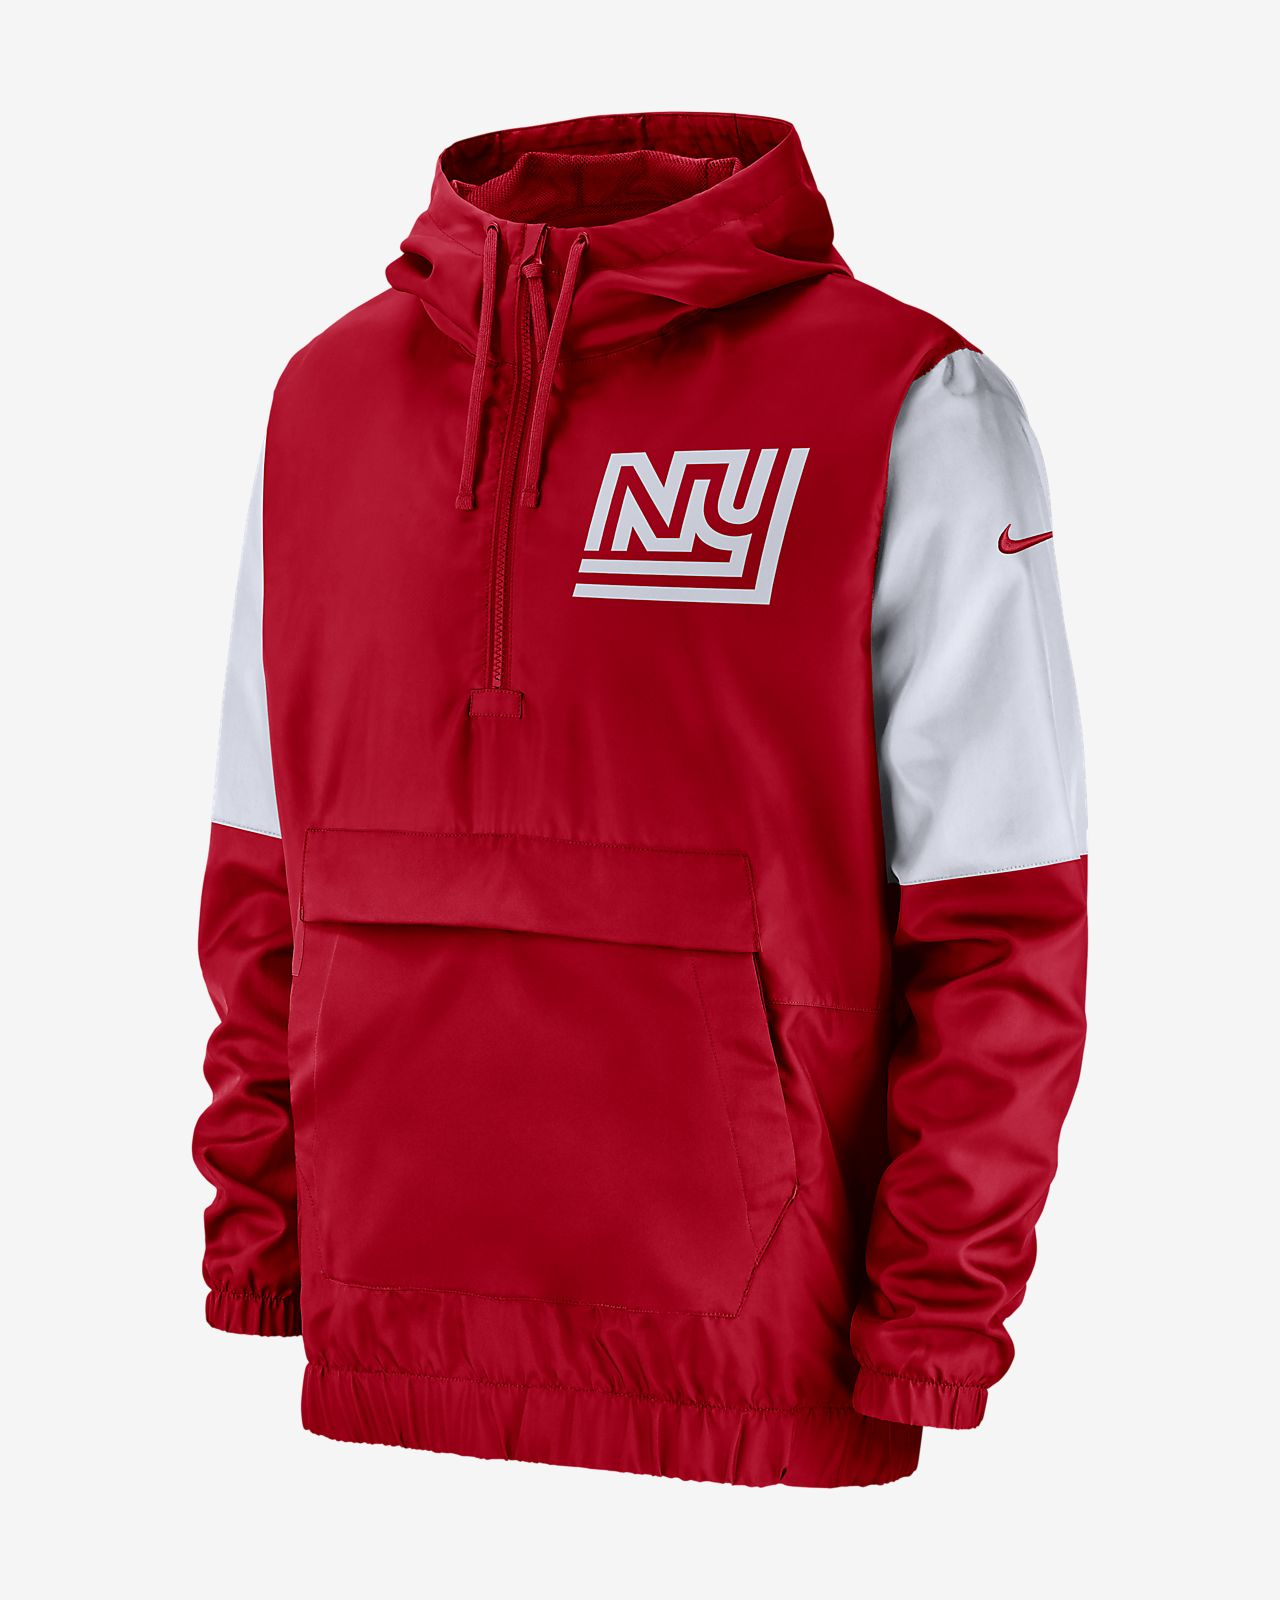 a097f795 Nike Anorak (NFL Giants) Men's Jacket